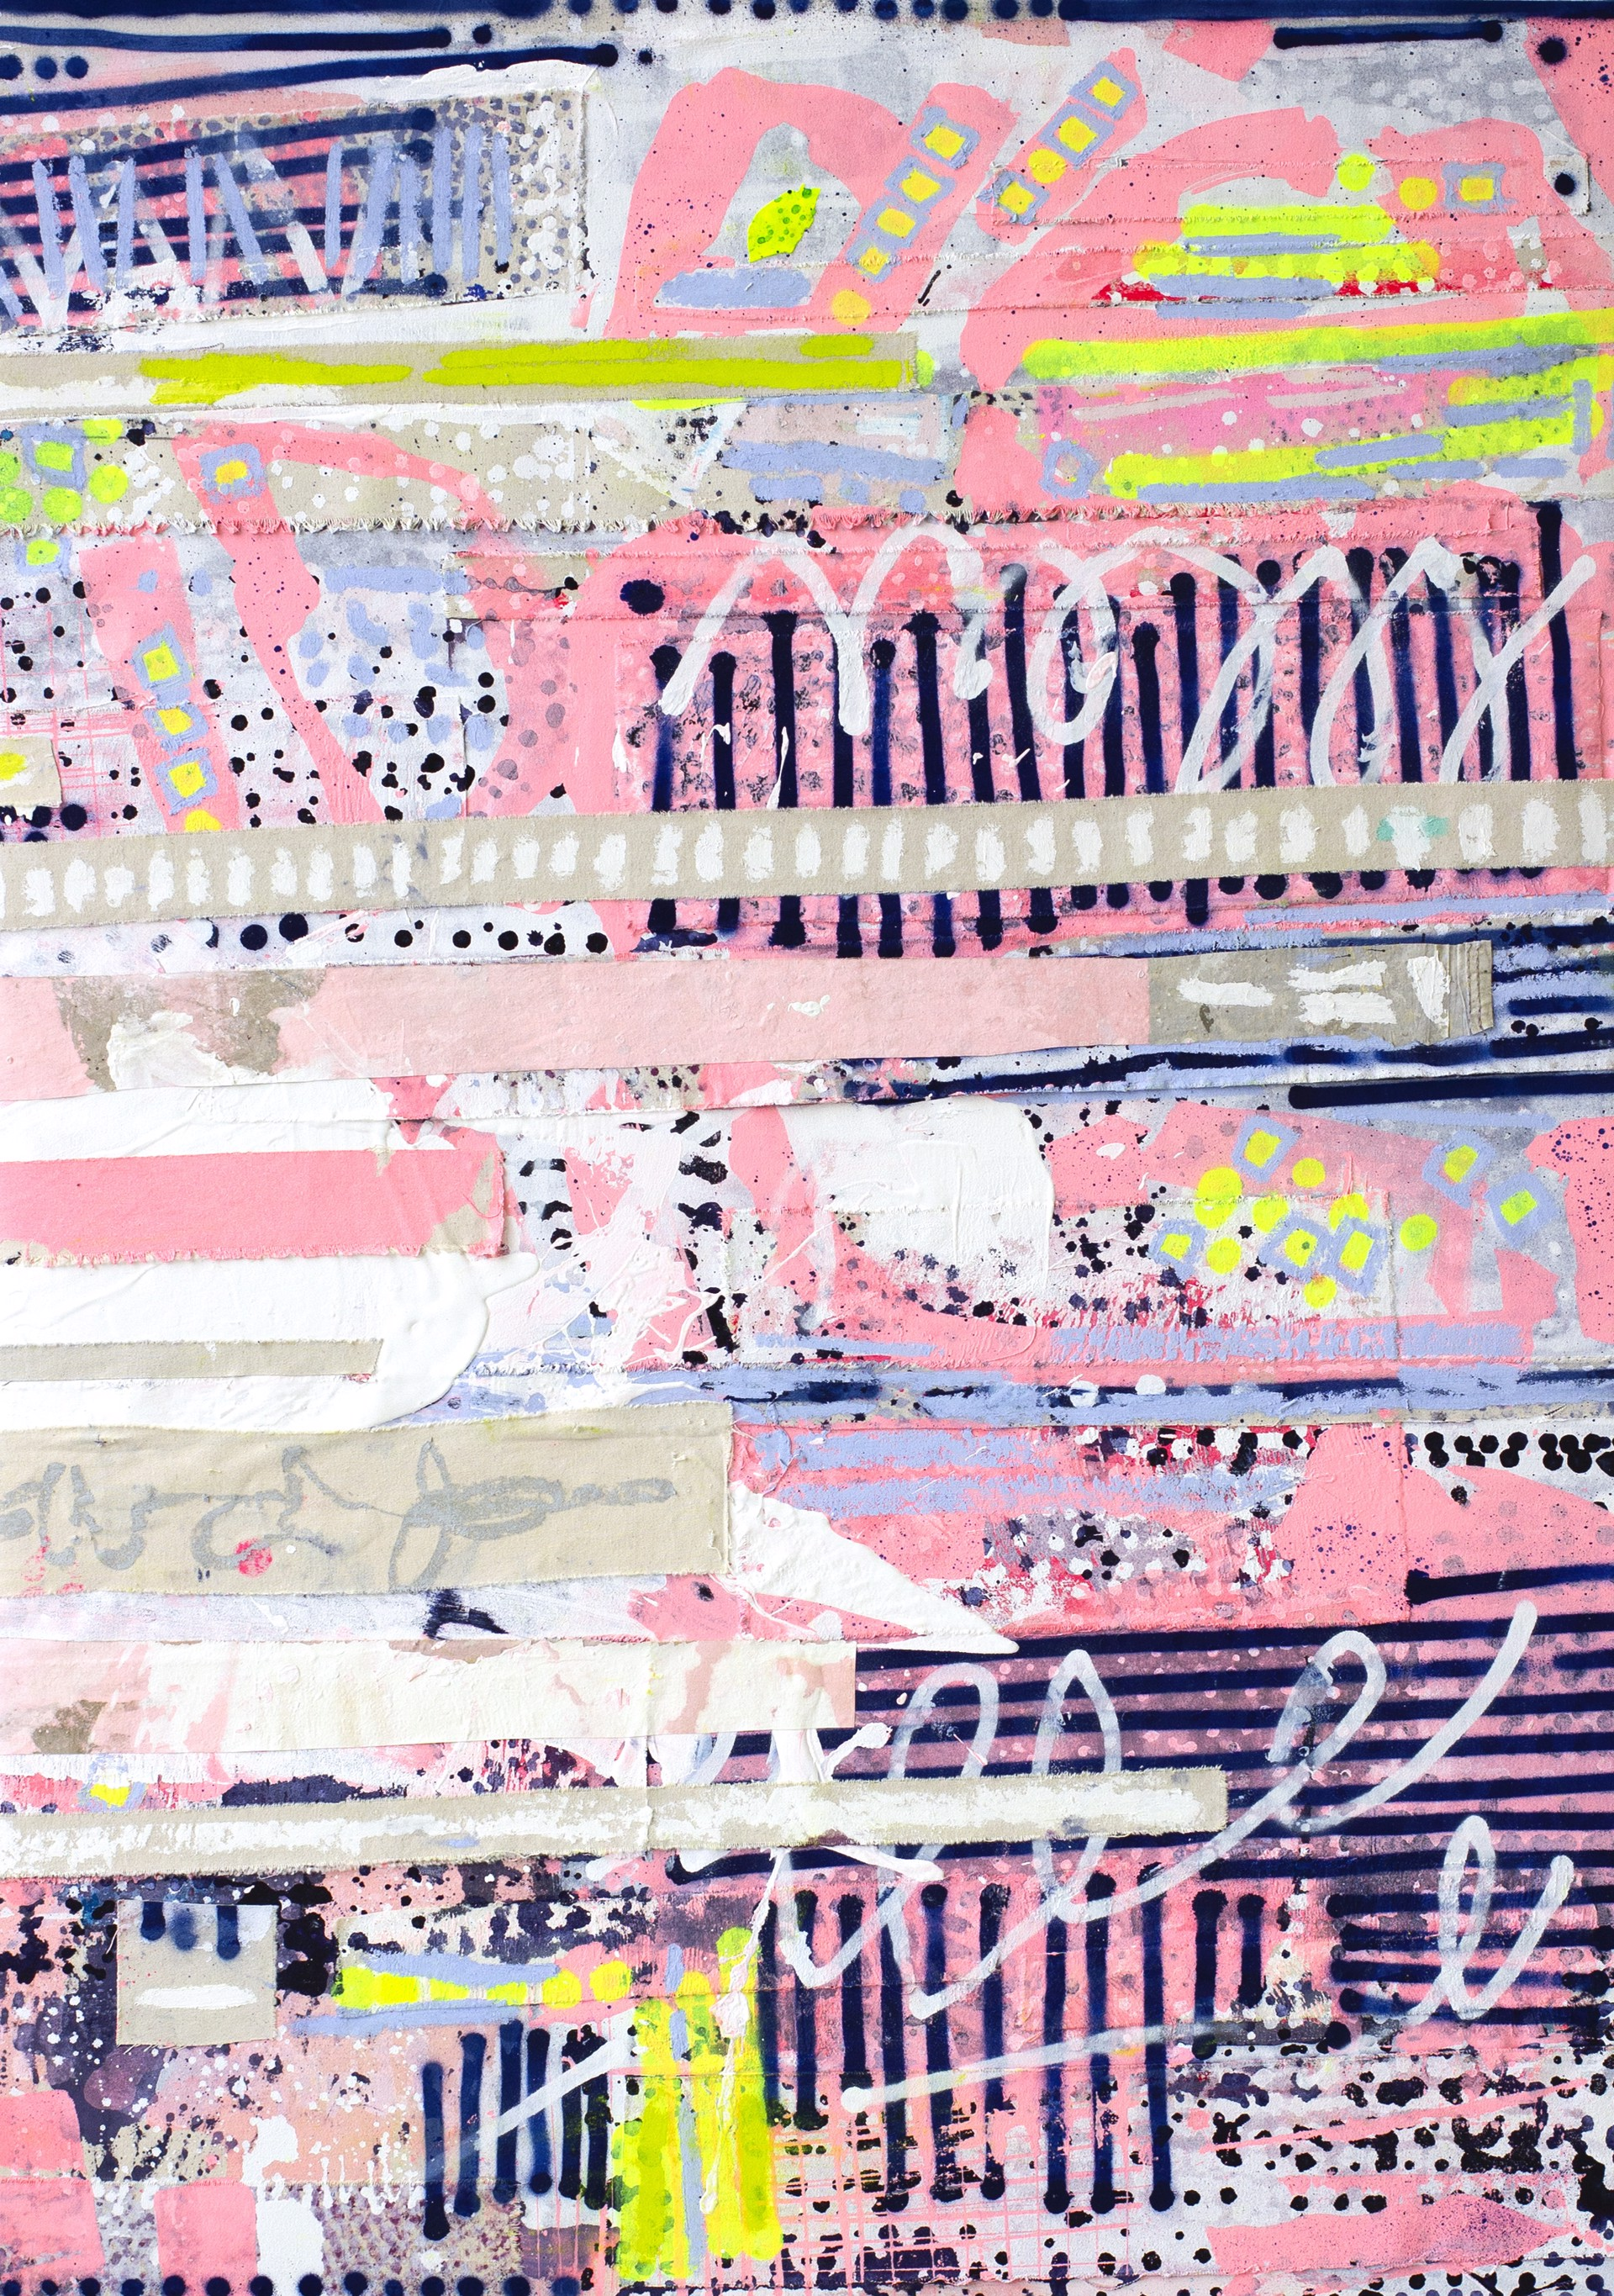 Candy Coated Super Cool I  (Can be Vertical or Horizontal Orientation) by Linda Colletta